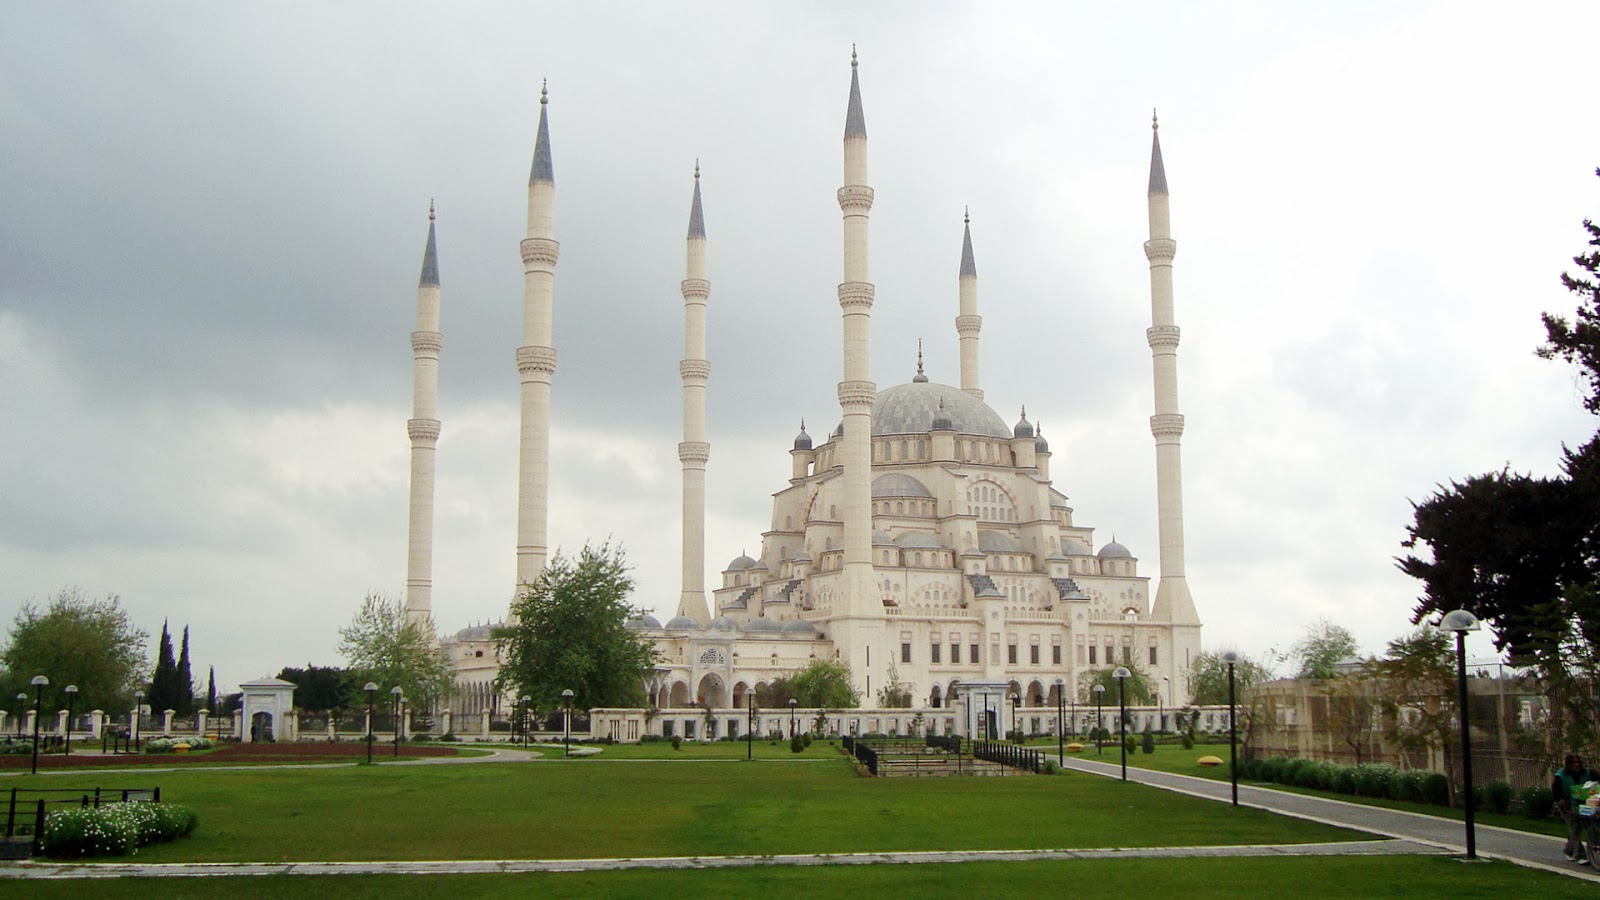 Architecture, Blue Mosque, Building, Islam, Istanbul, Largest Mosque in Turkey, Mosque, Muslim, News, Religion, Sabancı Merkez Camii, Sabanci Mosque, Turkey,